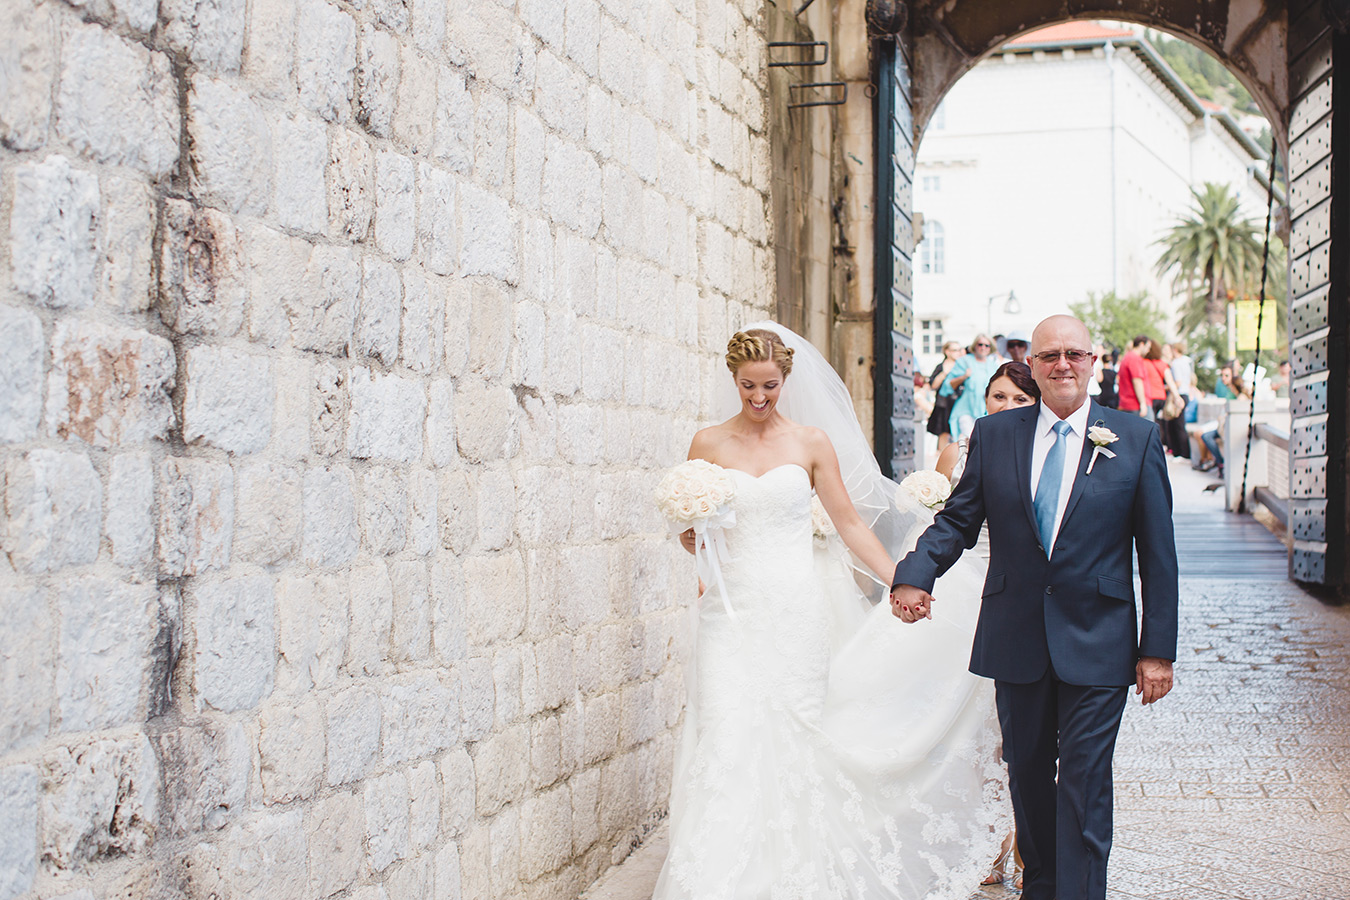 One of a set of images taken at this chic destination Wedding of Jenna & Nick. The stylish old town of Dubrovnik, Croatia.  The father of the Bride walks with his daughter.Photography by Matt Porteous